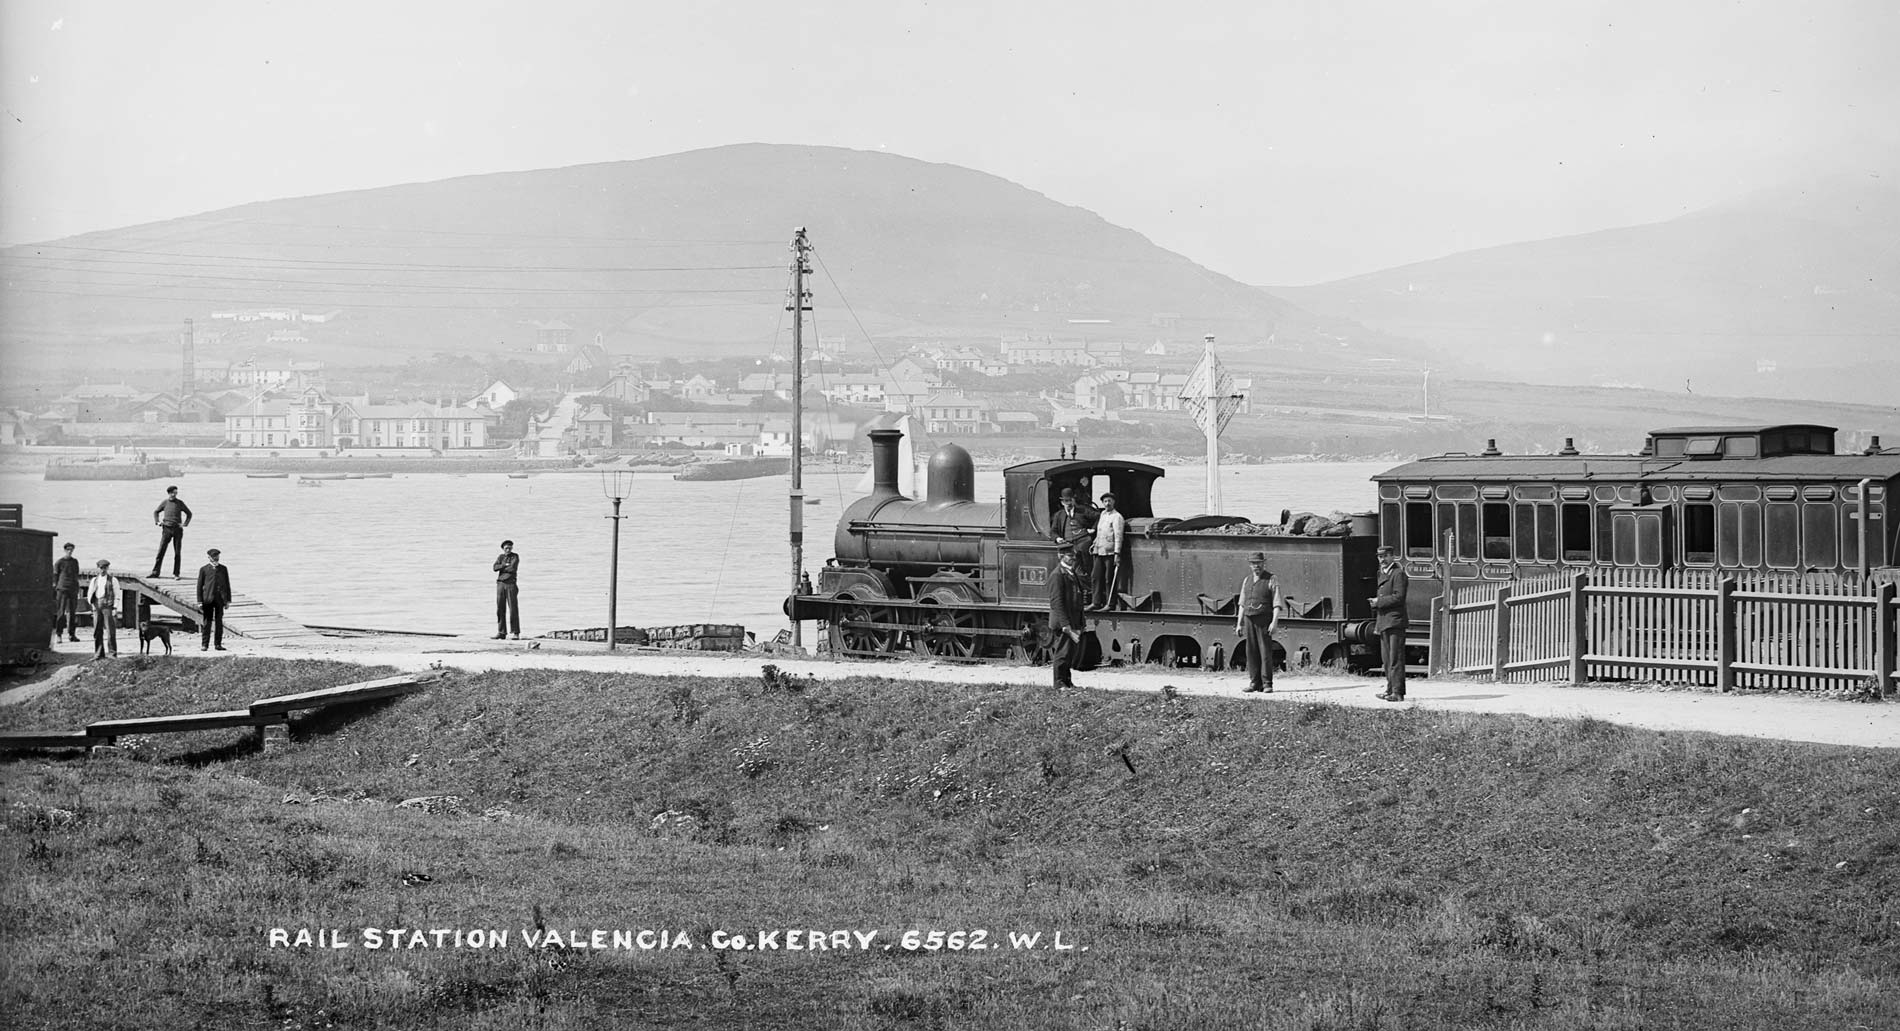 Locomotive 107 at Valentia (Valencia) Harbour Station in Co. Kerry between 1901 and 1908. The line was served by the Great Southern and Western Railway